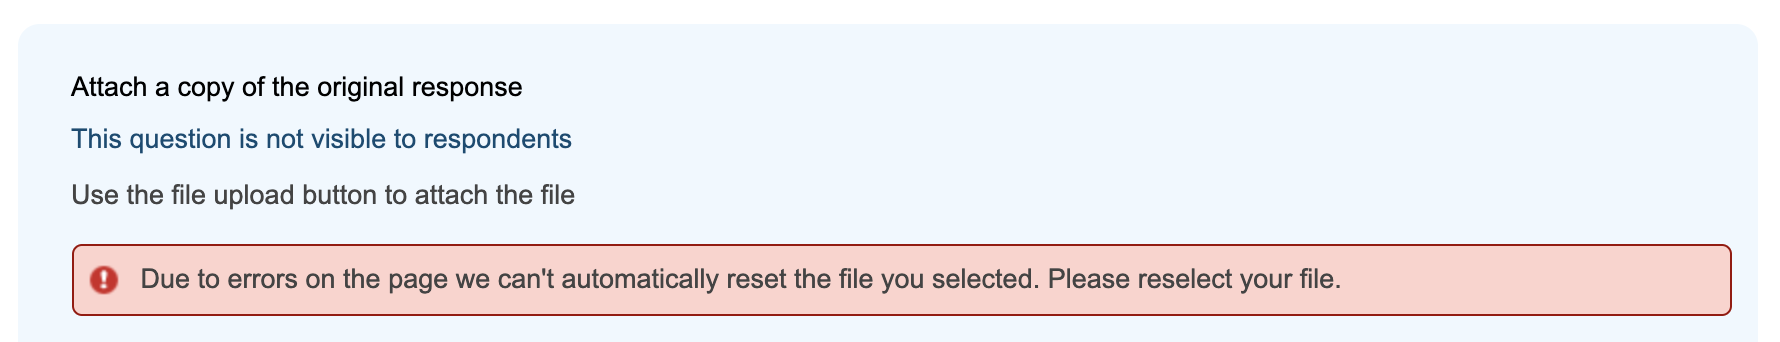 Error message on file uploads component if missing other required information. It states, Due to errors on the page we can't automatically reset the file you selected. Please reselect your file.